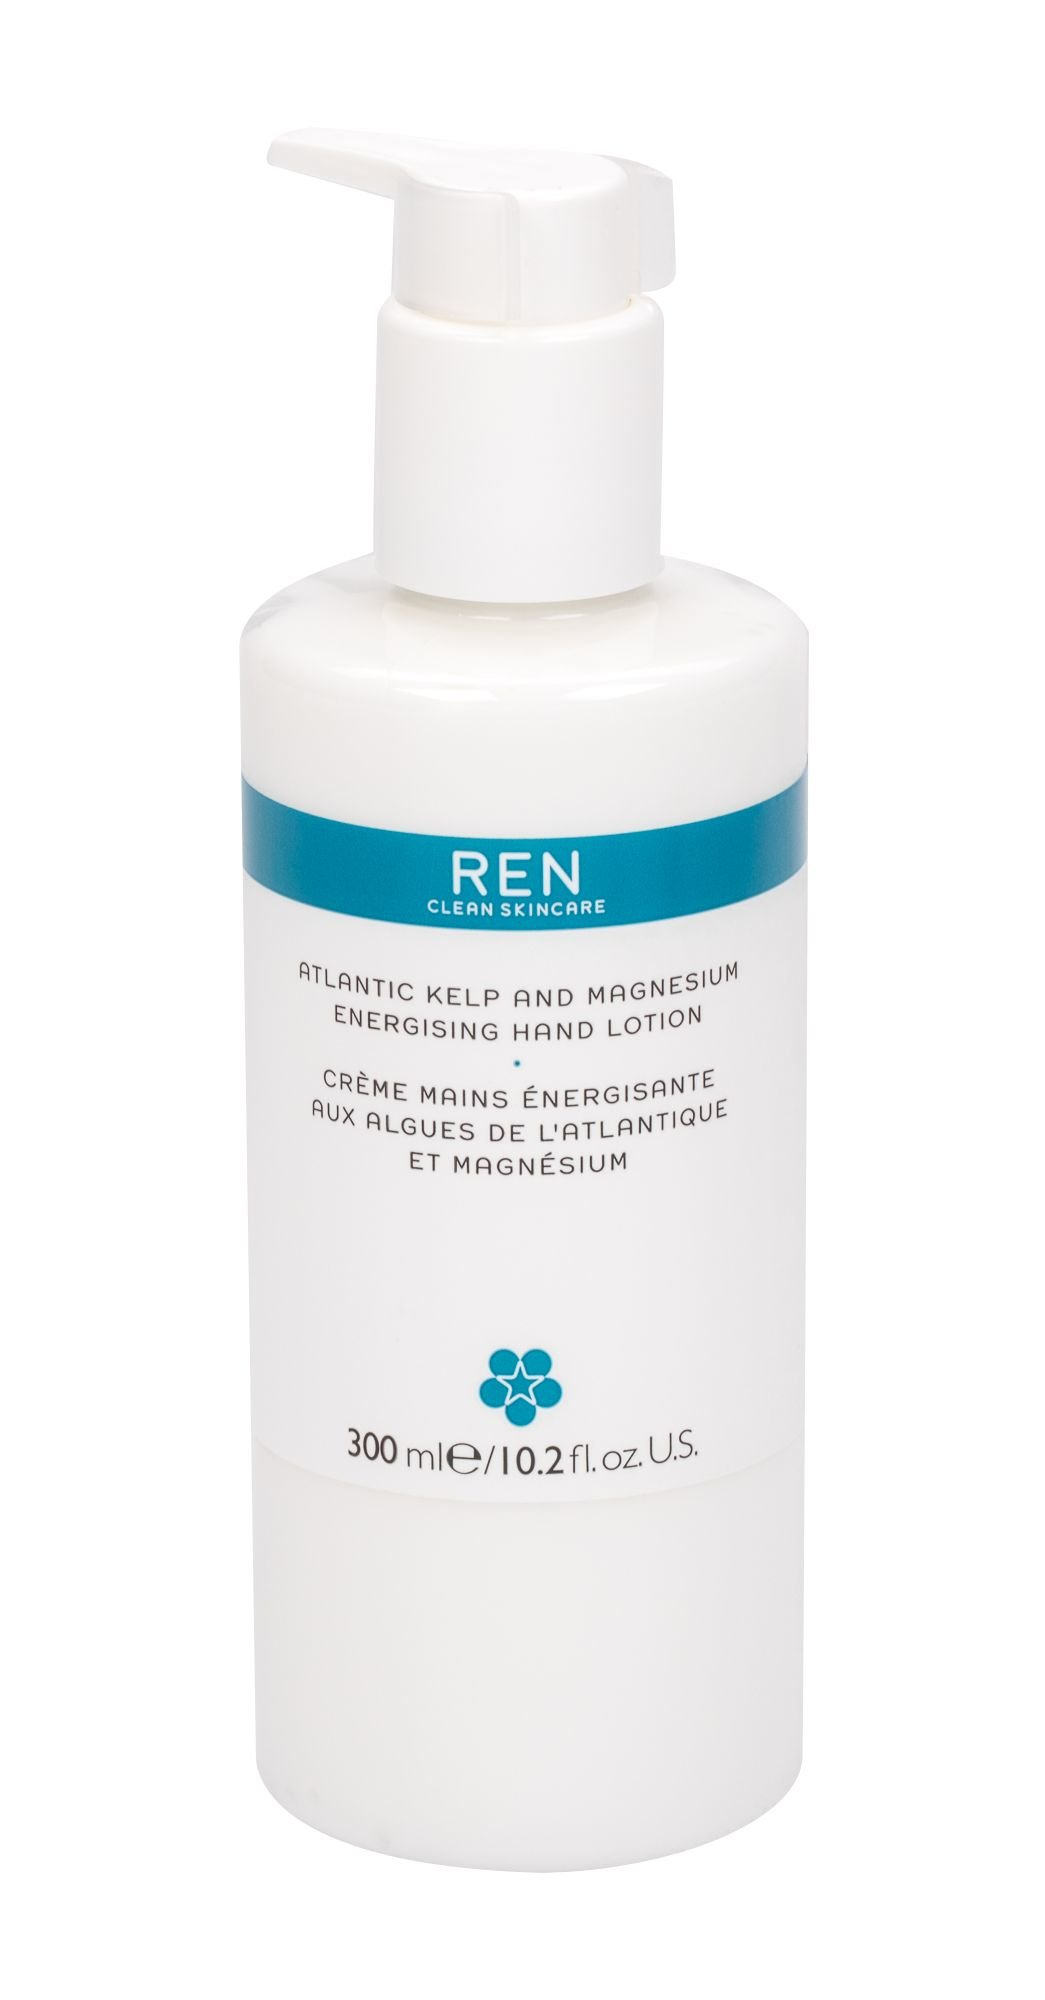 Ren Clean Skincare Hand Care Hand Cream 300ml  Energising Hand Lotion